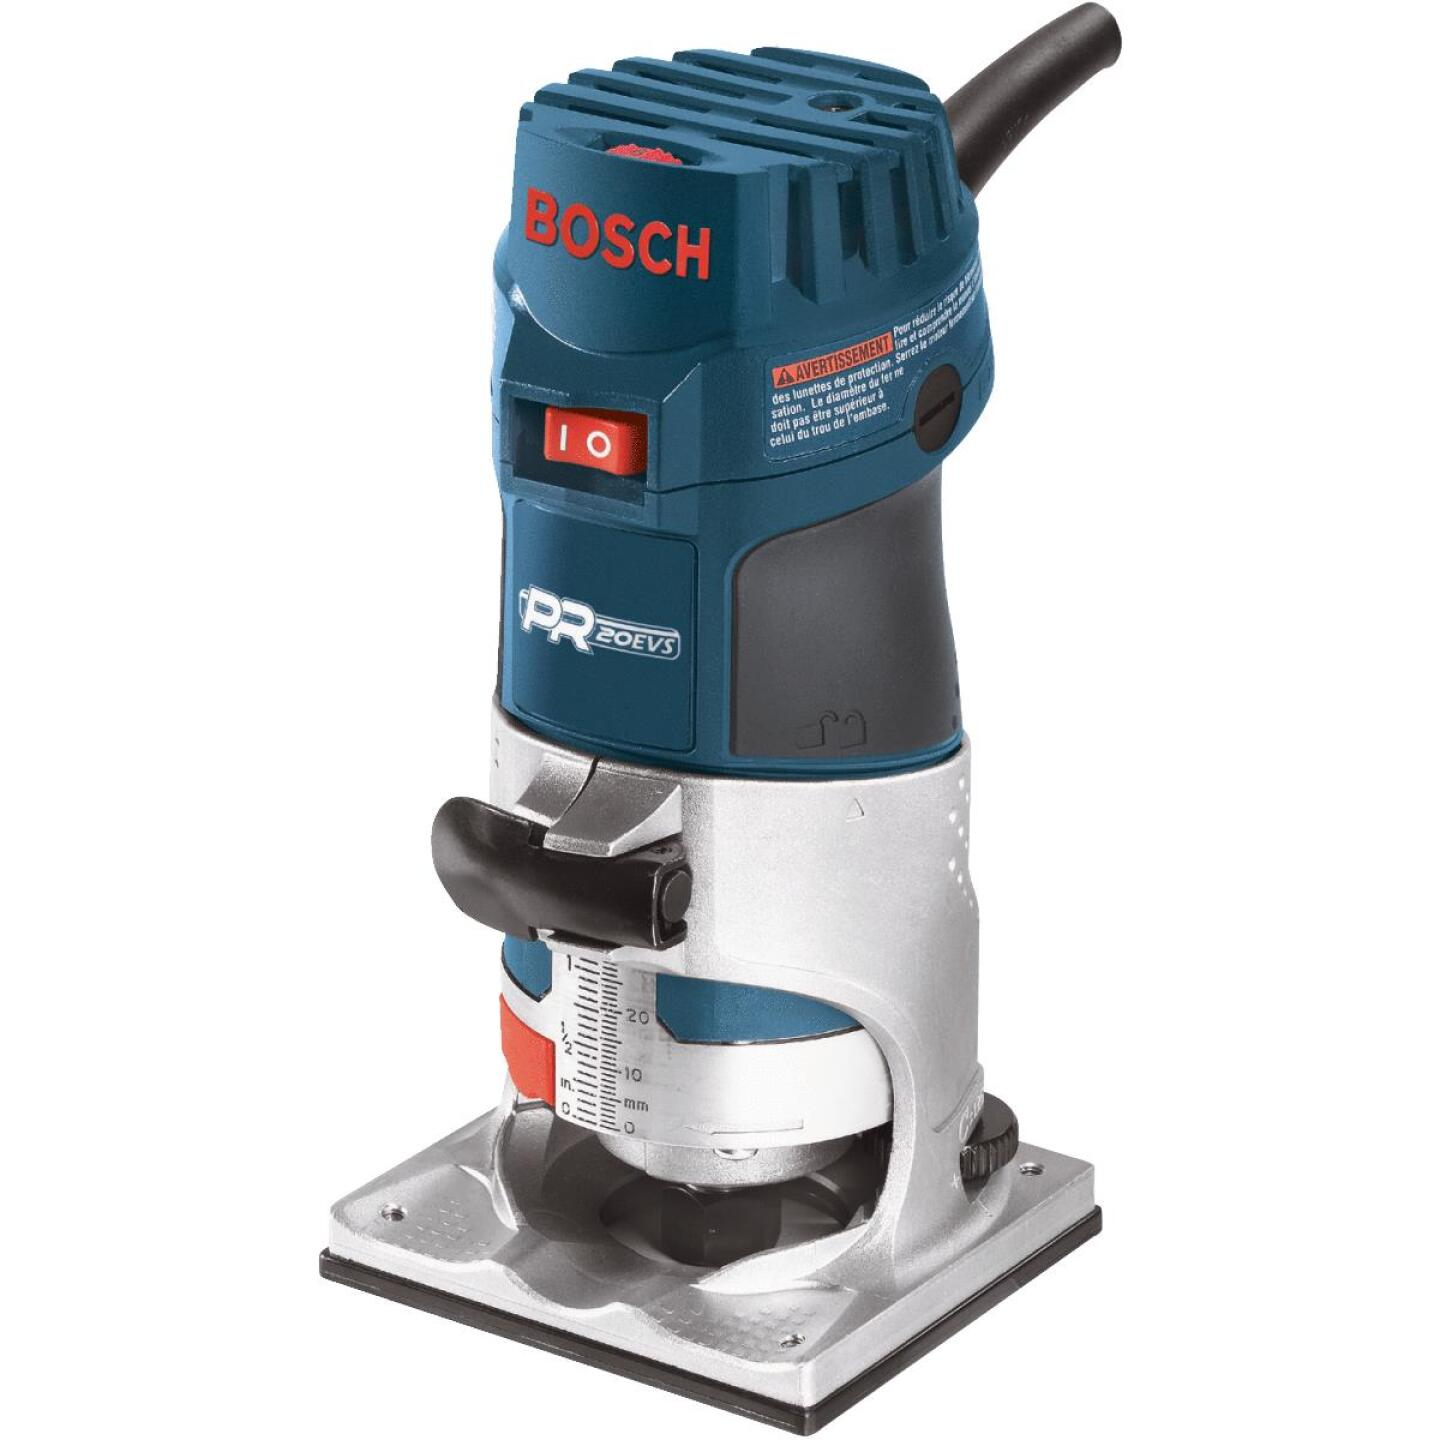 Bosch 1 HP/5.6A 16,000 to 35,000 rpm Router Image 1